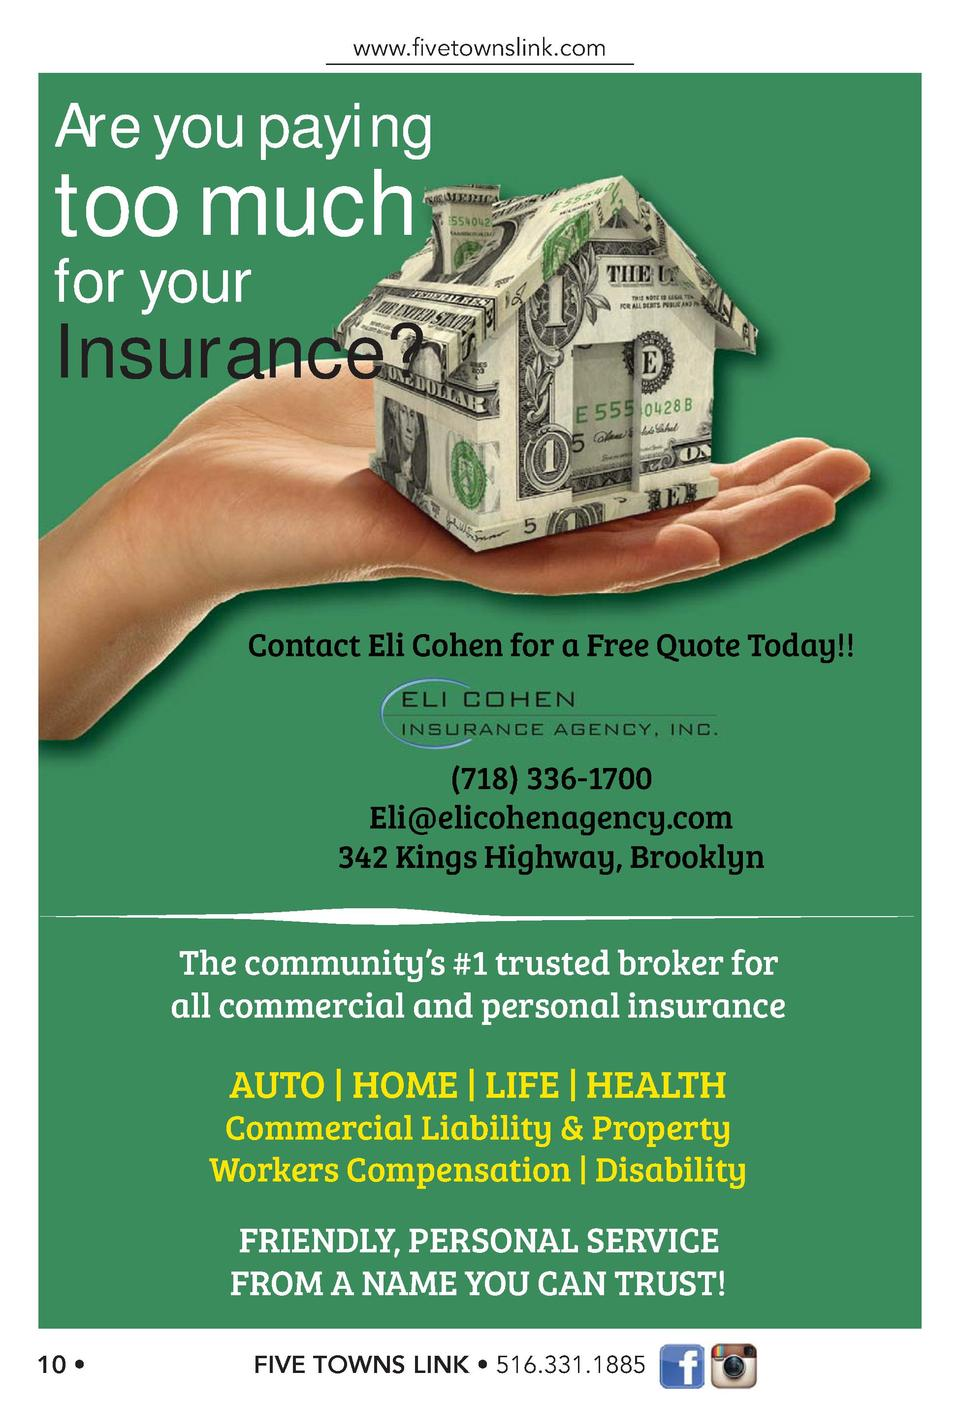 www.   vetownslink.com  Are you paying  too much for your  Insurance   Contact Eli Cohen for a Free Quote Today     718  3...